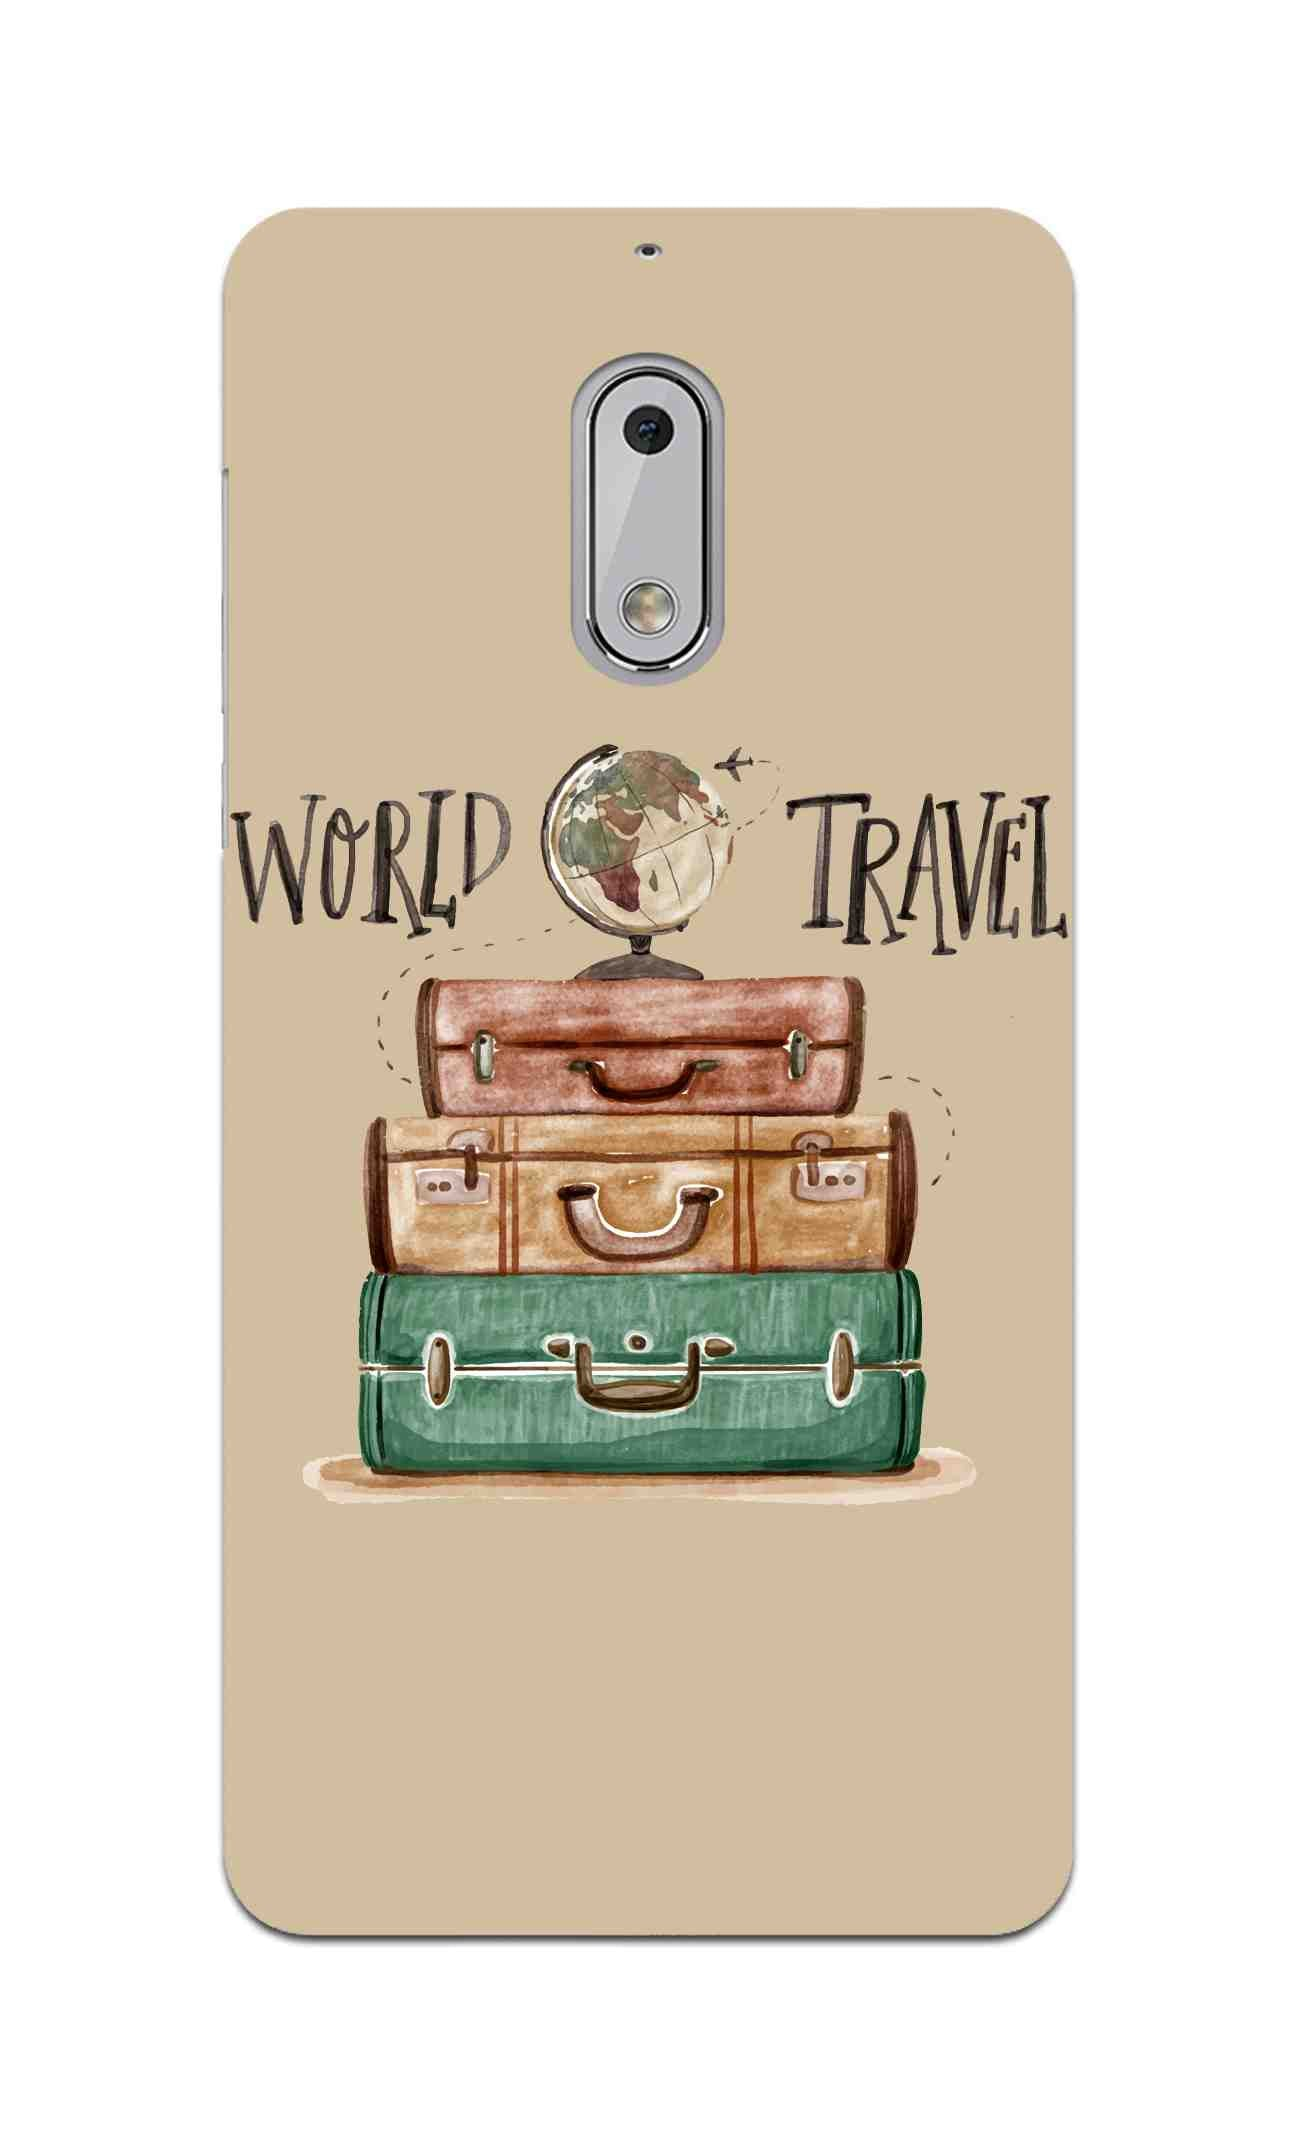 Travel World With Bags For Travellers Nokia 6 Mobile Cover Case